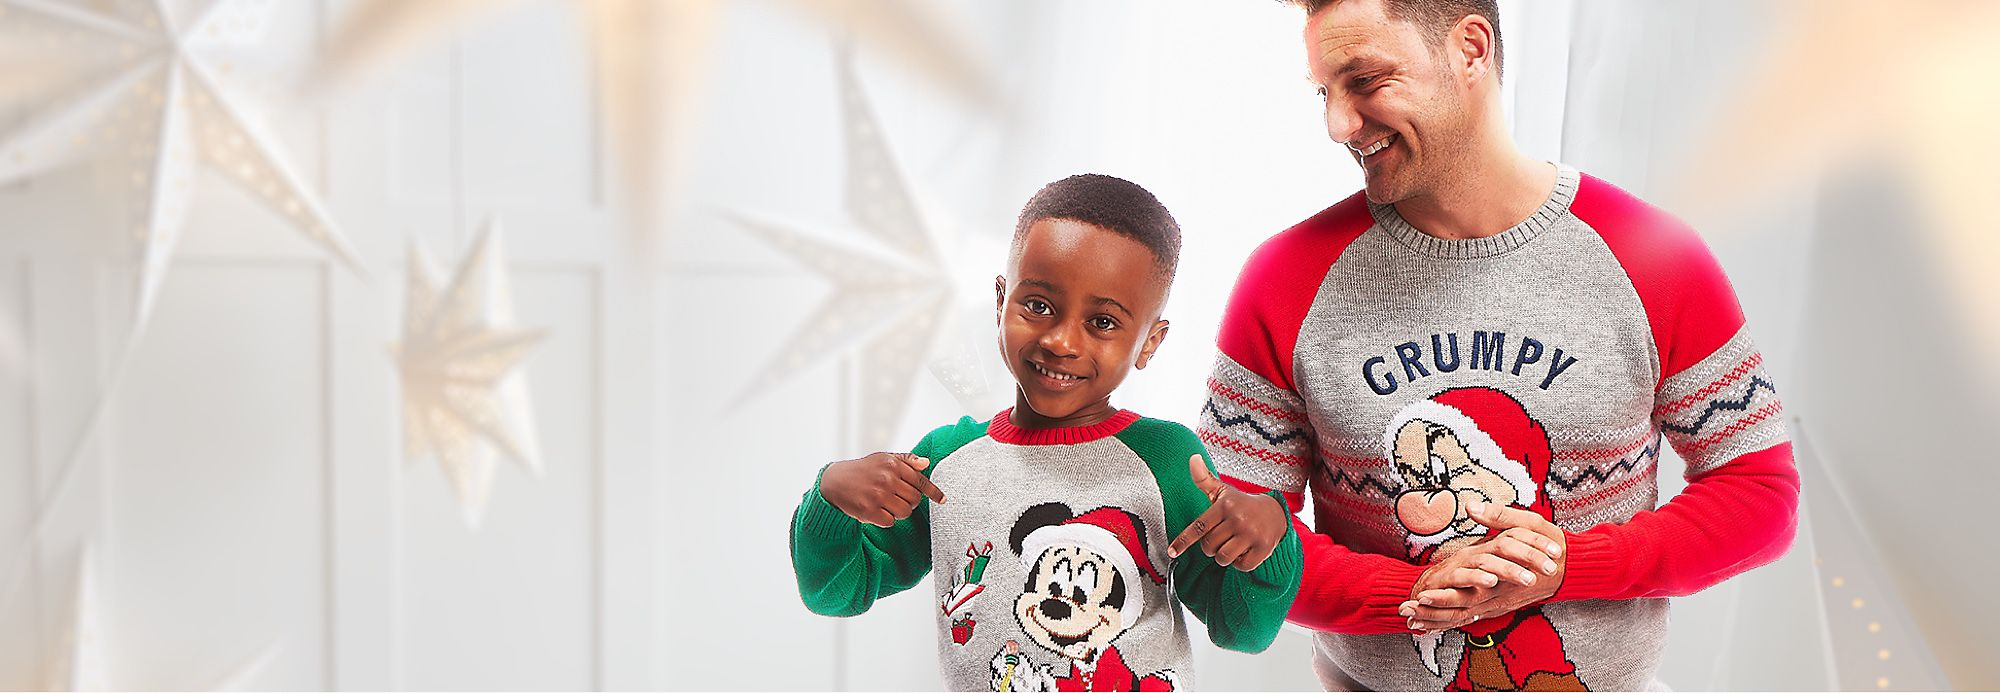 Christmas Fashion They'll feel festive and fancy with our Christmas clothing collections SHOP NOW